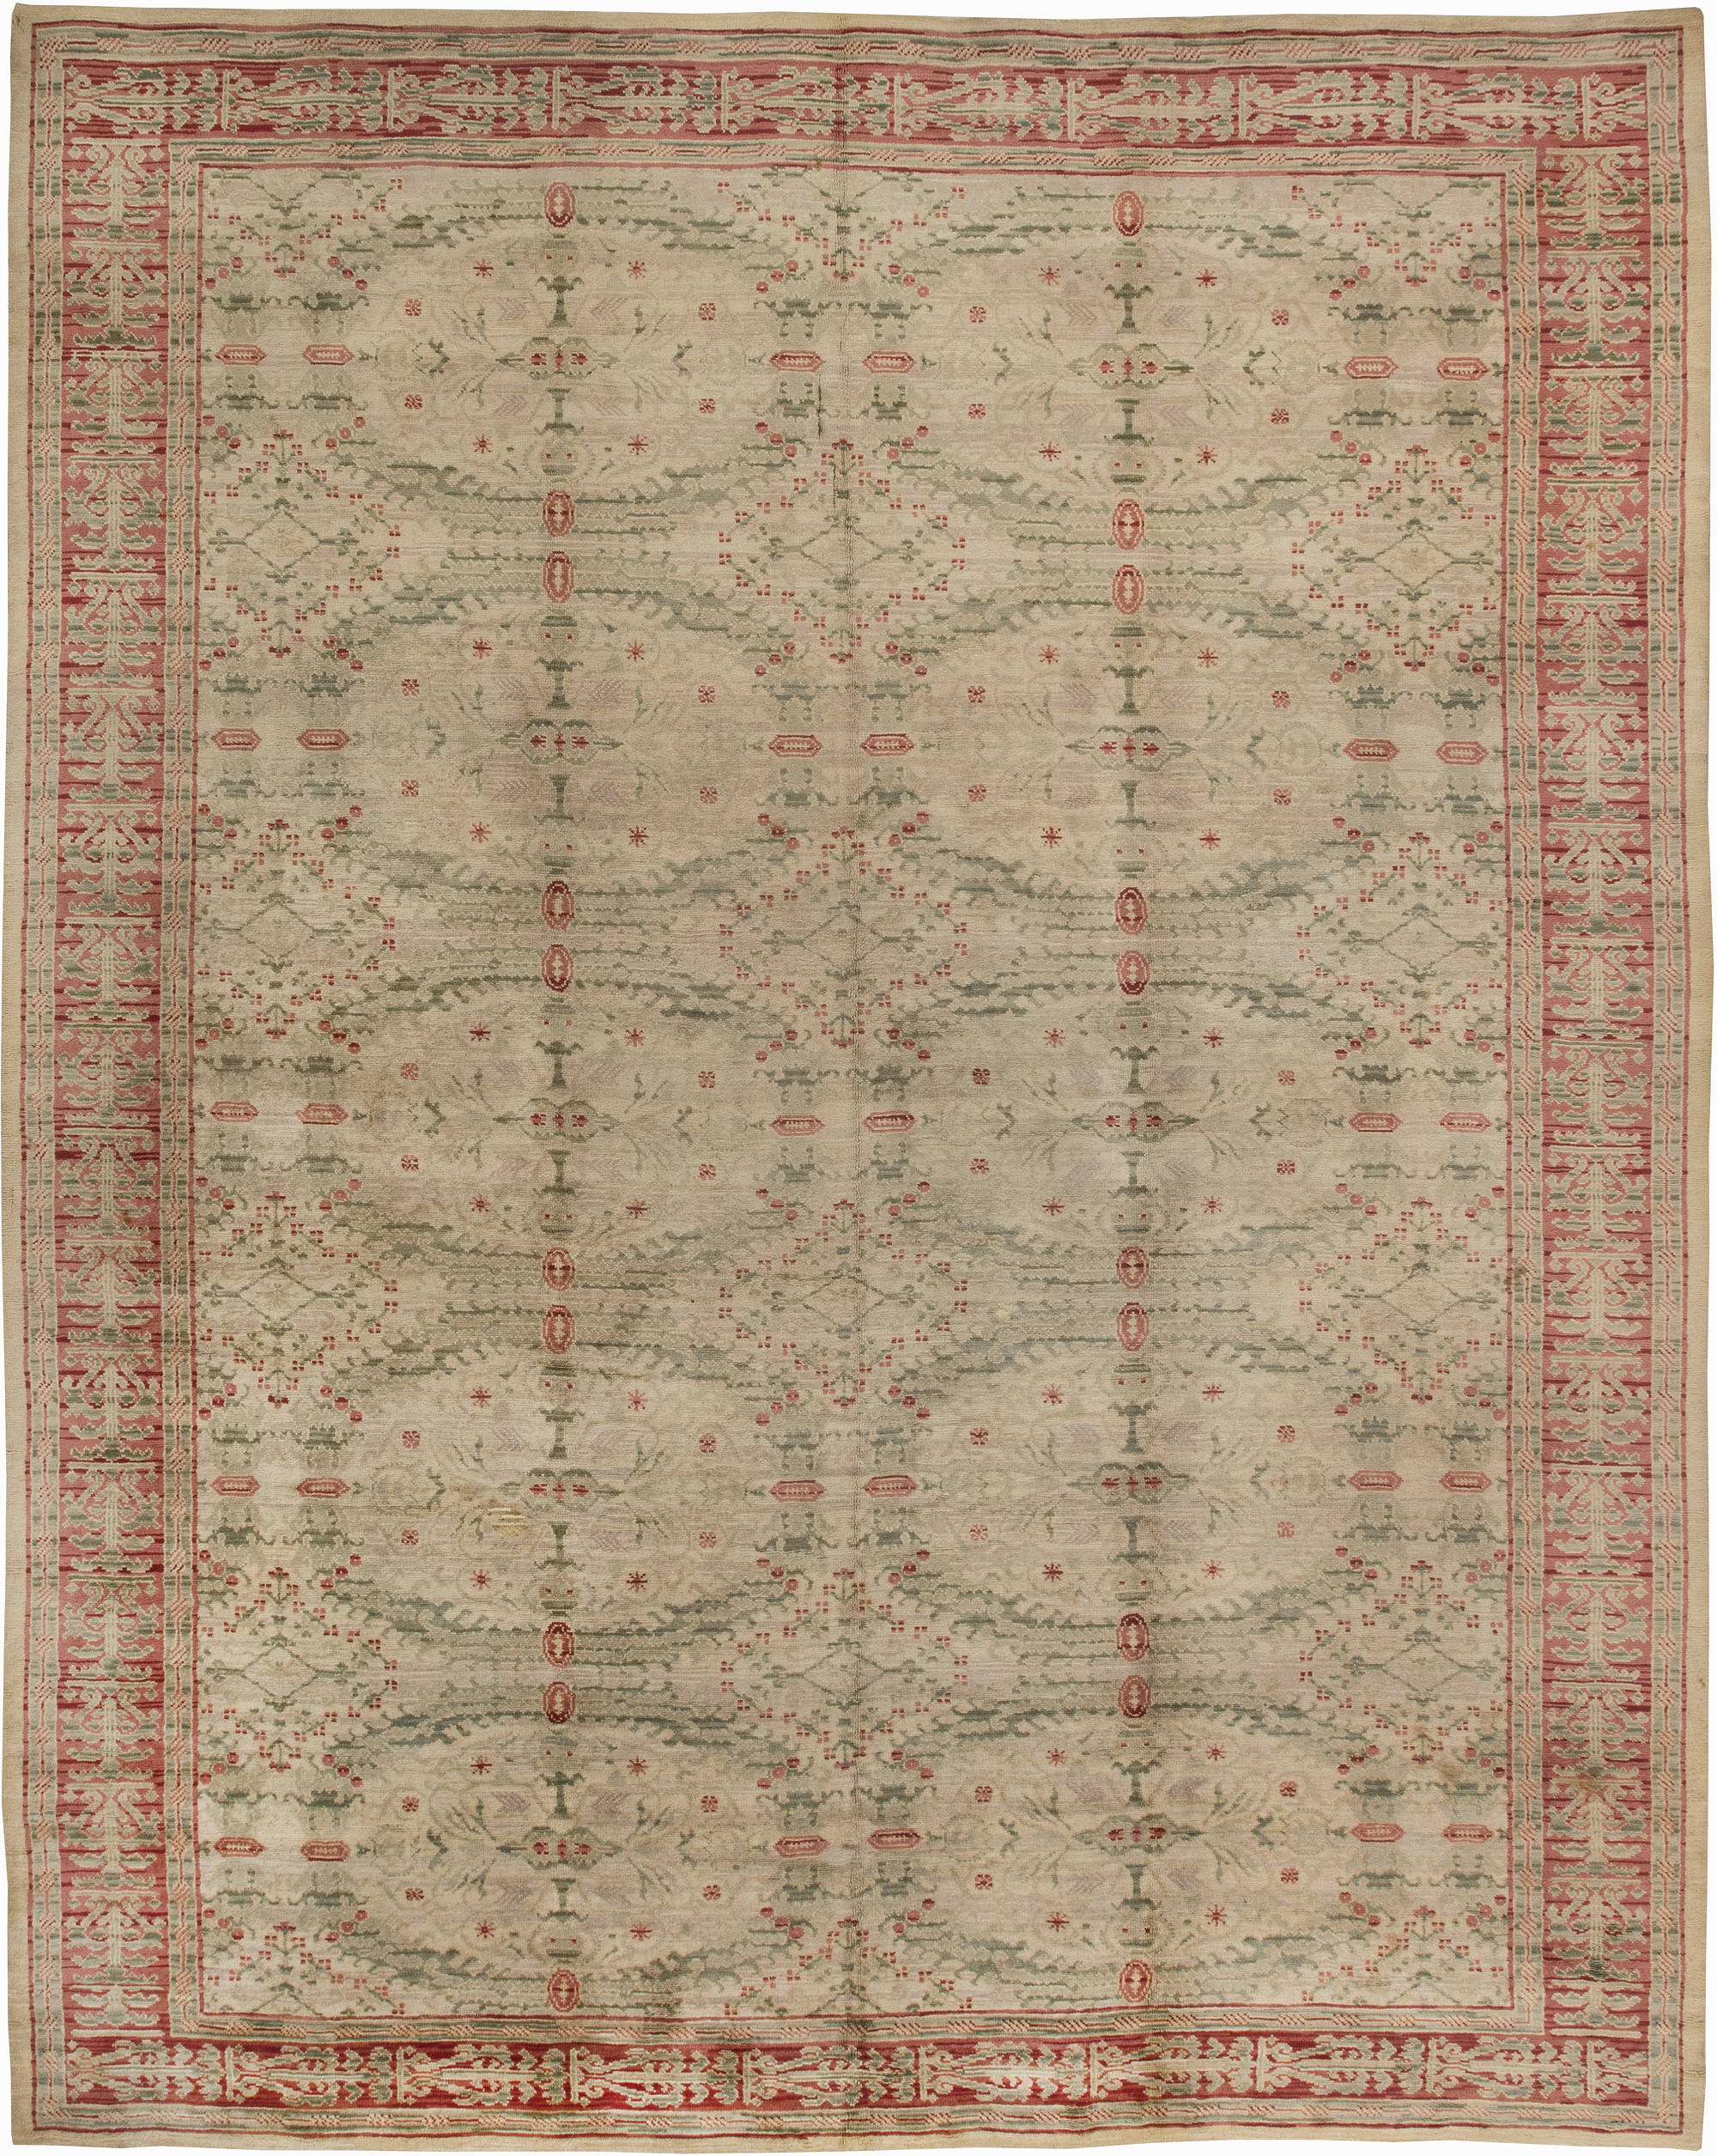 Vintage Spanish Carpet (size adjusted) BB2525